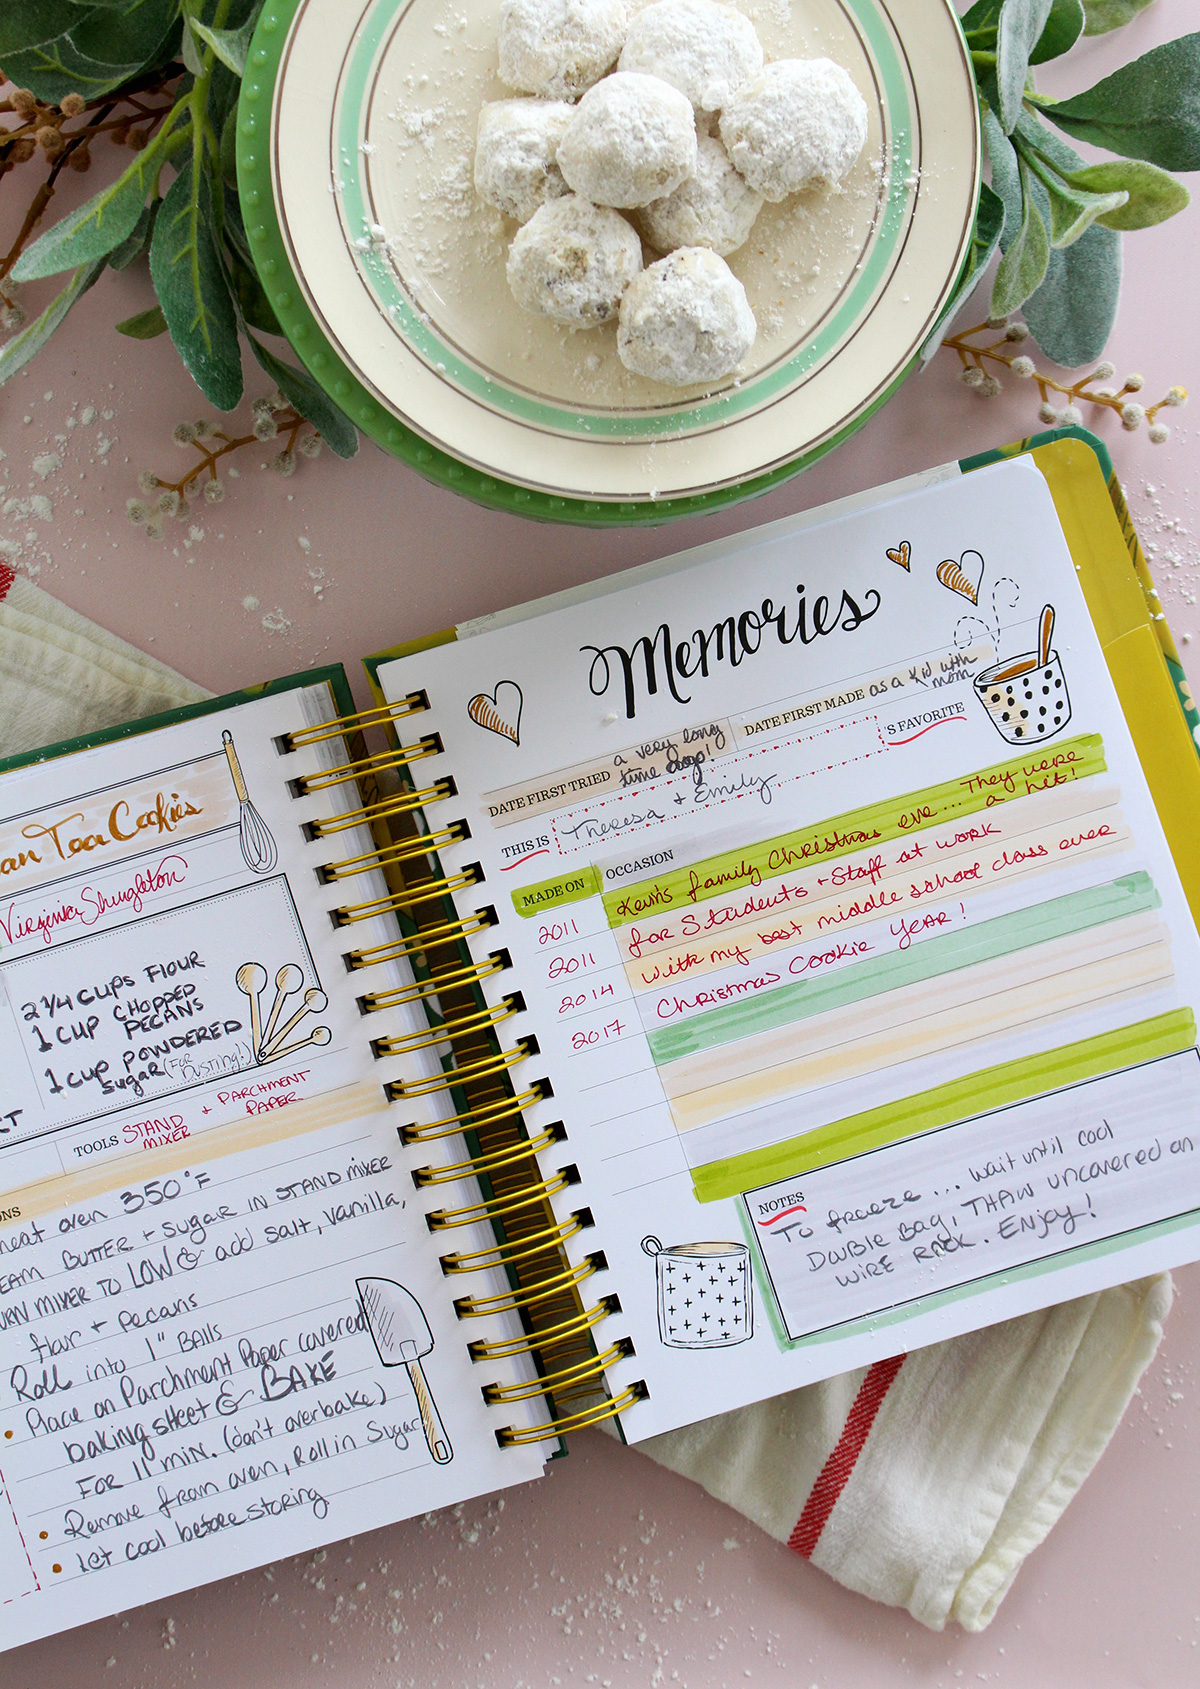 Russian Tea Cookie Recipe In The Keepsake Kitchen Diary - a family cookbook and memory keeper